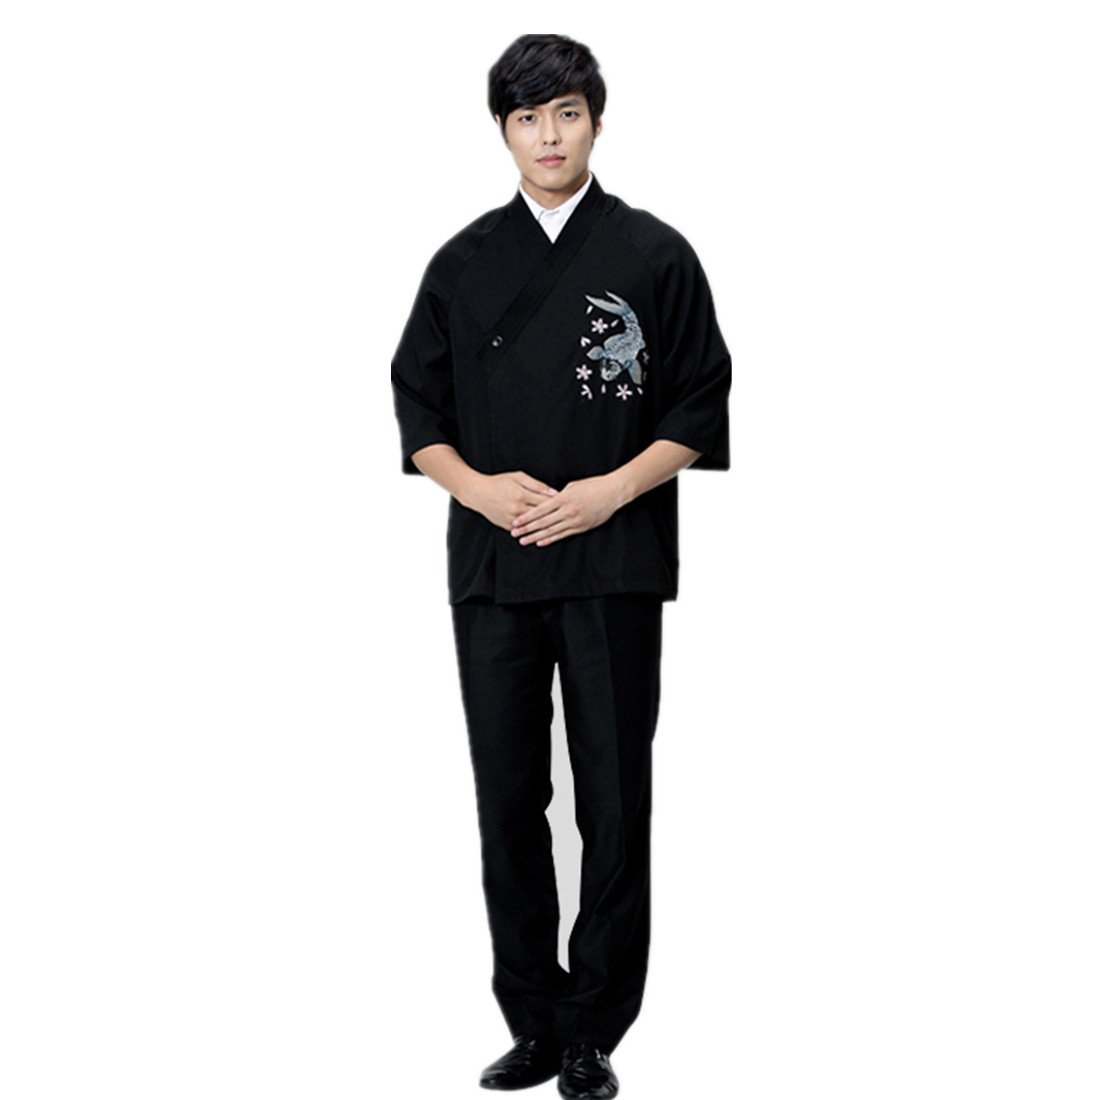 ChefsUniforms Mens Japanese Black Sushi Chef Coat With Embroidery Pattern For Restaurant